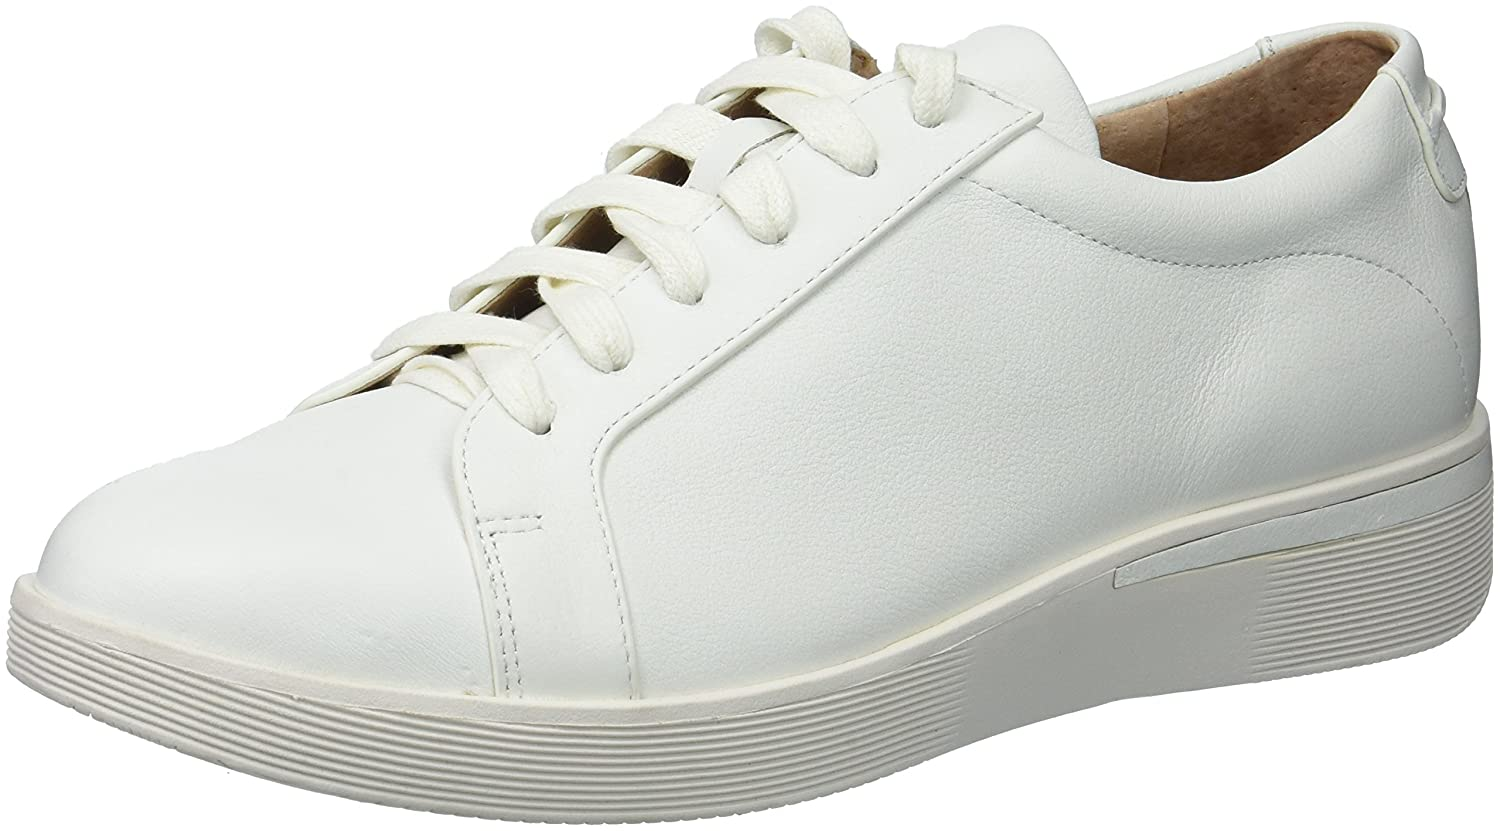 Gentle Souls Women's PARC Low Top Lace-up Sneaker B0787PGBN7 8.5 B(M) US|White